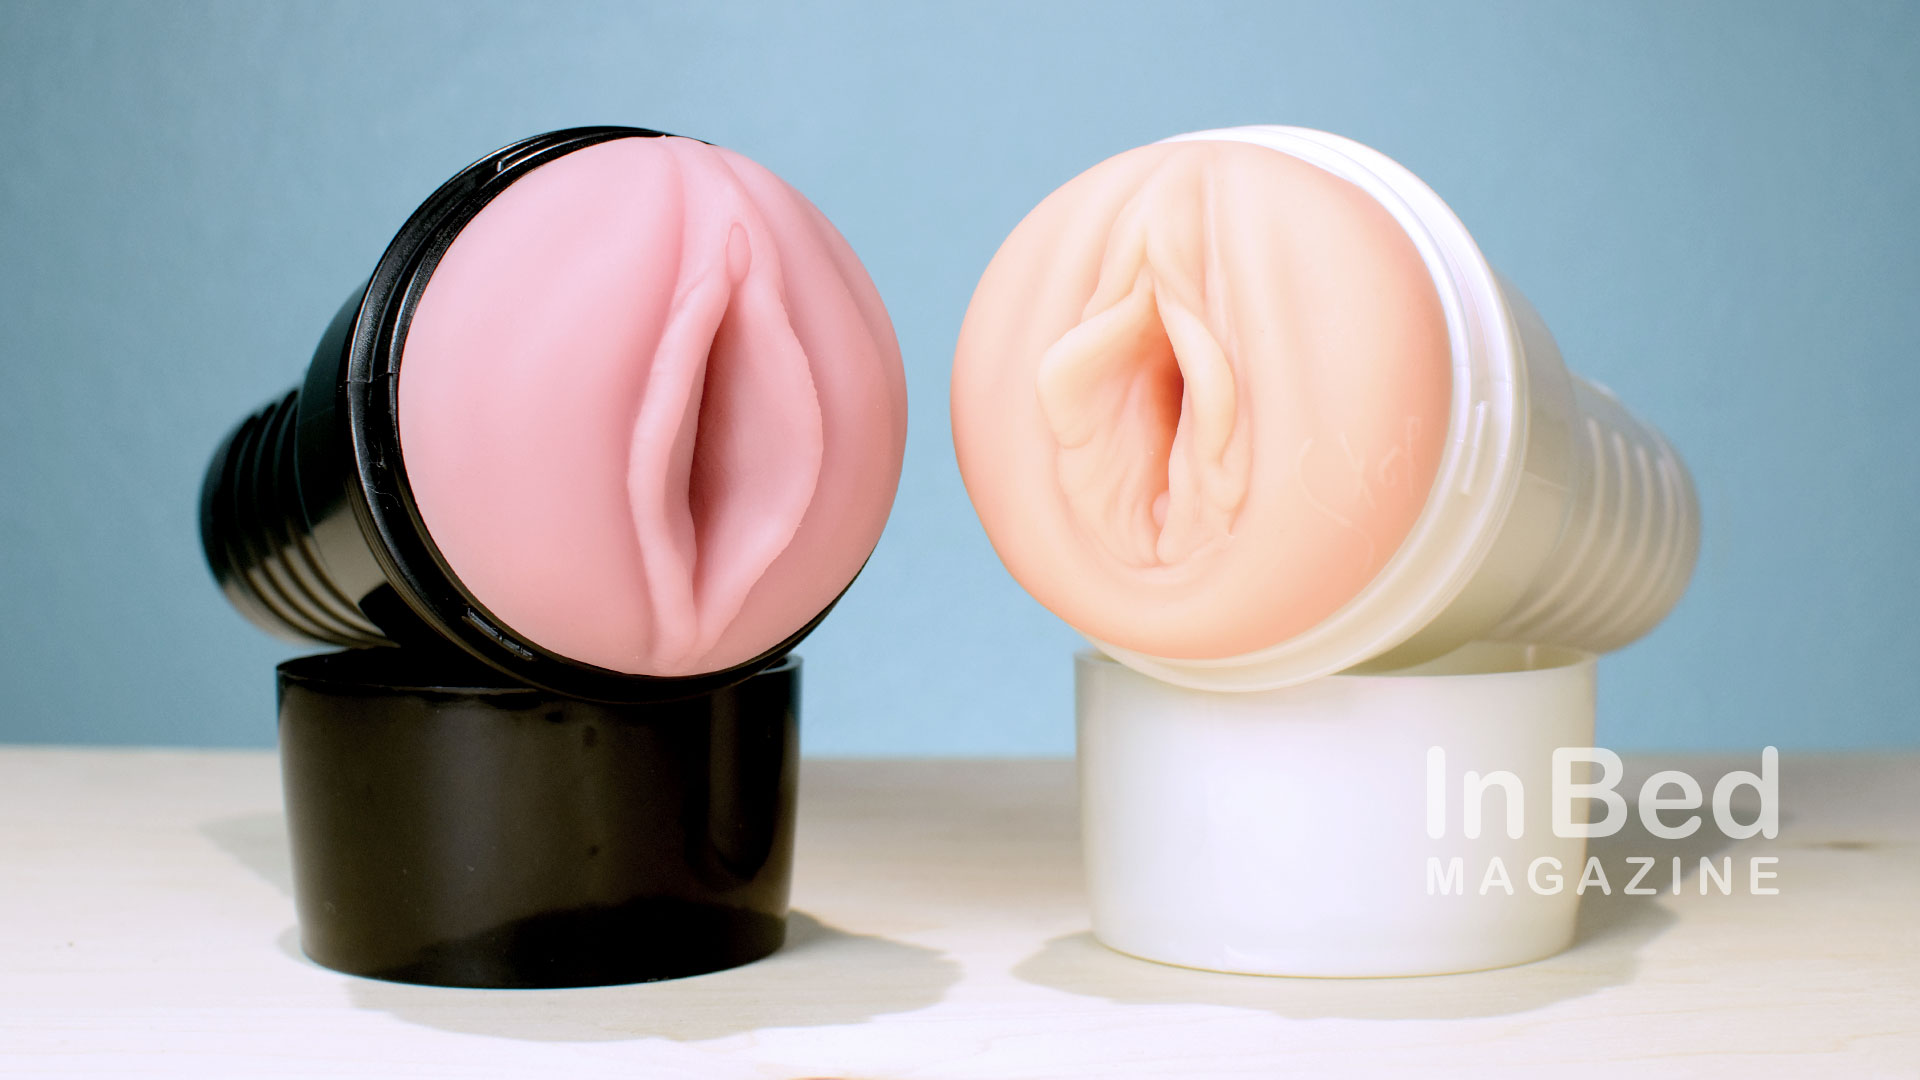 Fleshlight Male Pleasure Products Outlet Reseller